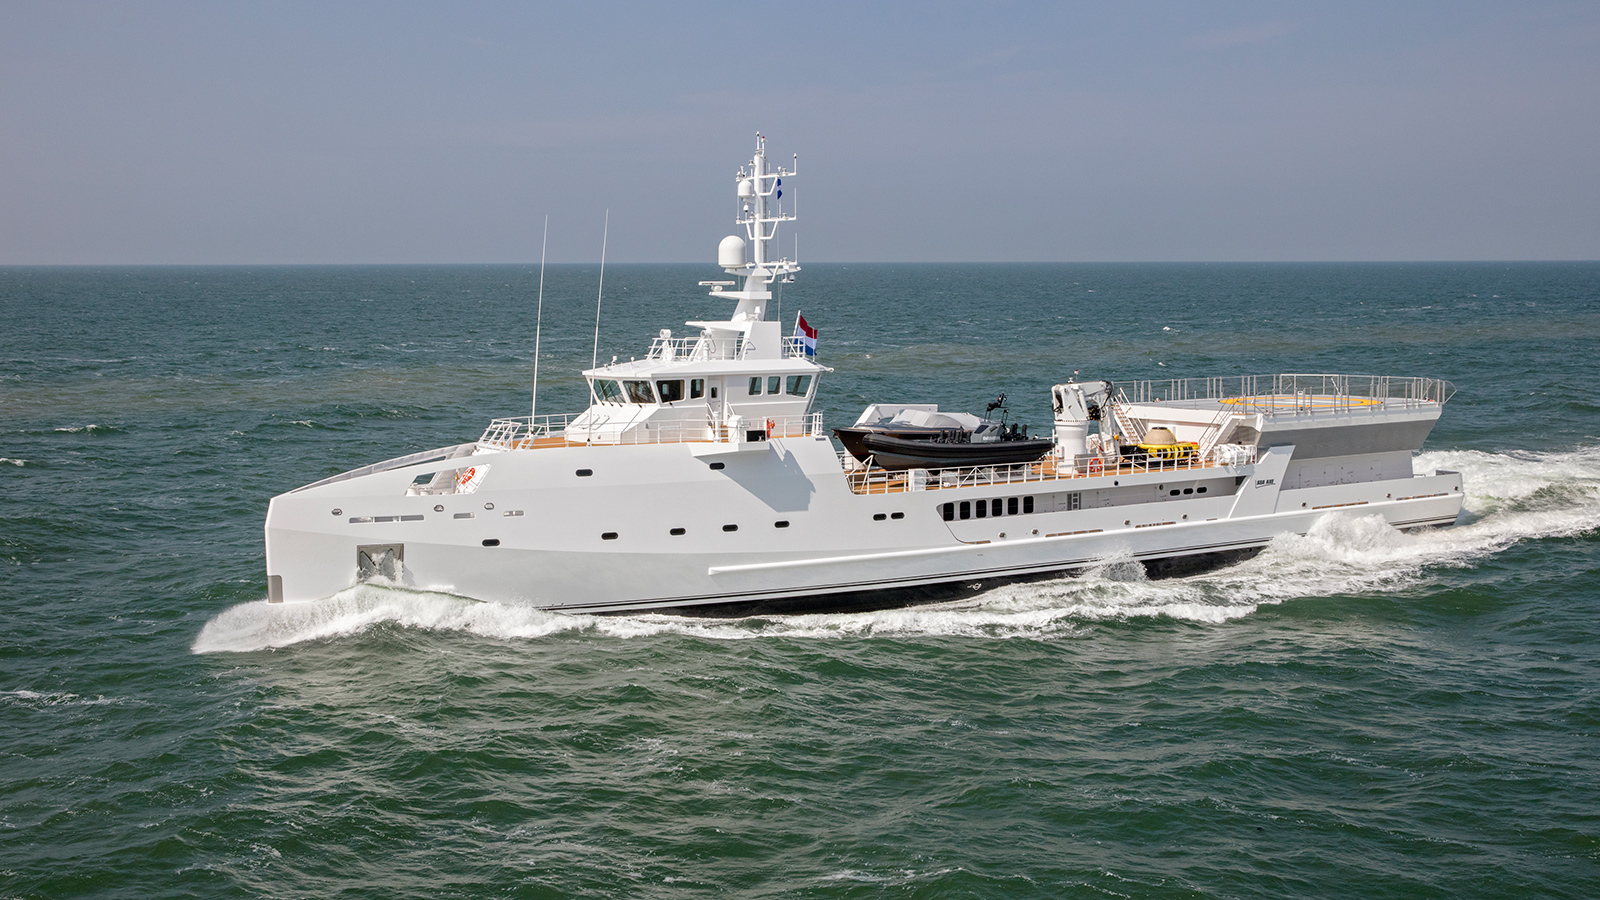 side-view-of-the-69-metre-damen-superyacht-support-vessel-game-changer